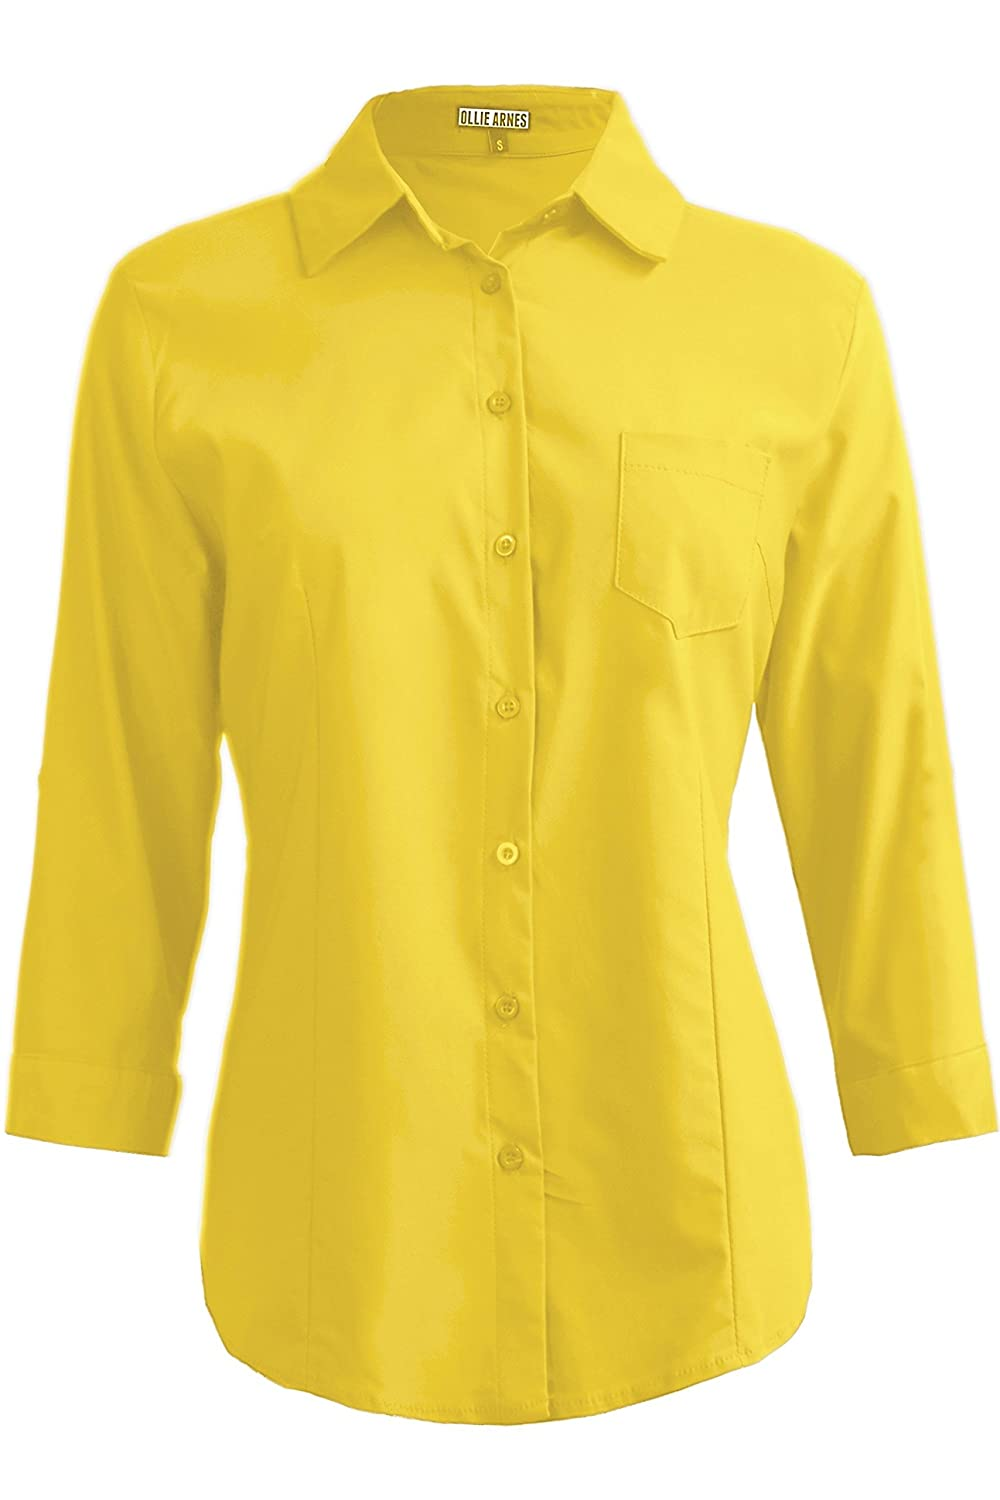 Ollie Arnes Womens Front Pocket Roll up Sleeve Button Bown Chiffon Cotton Blouse